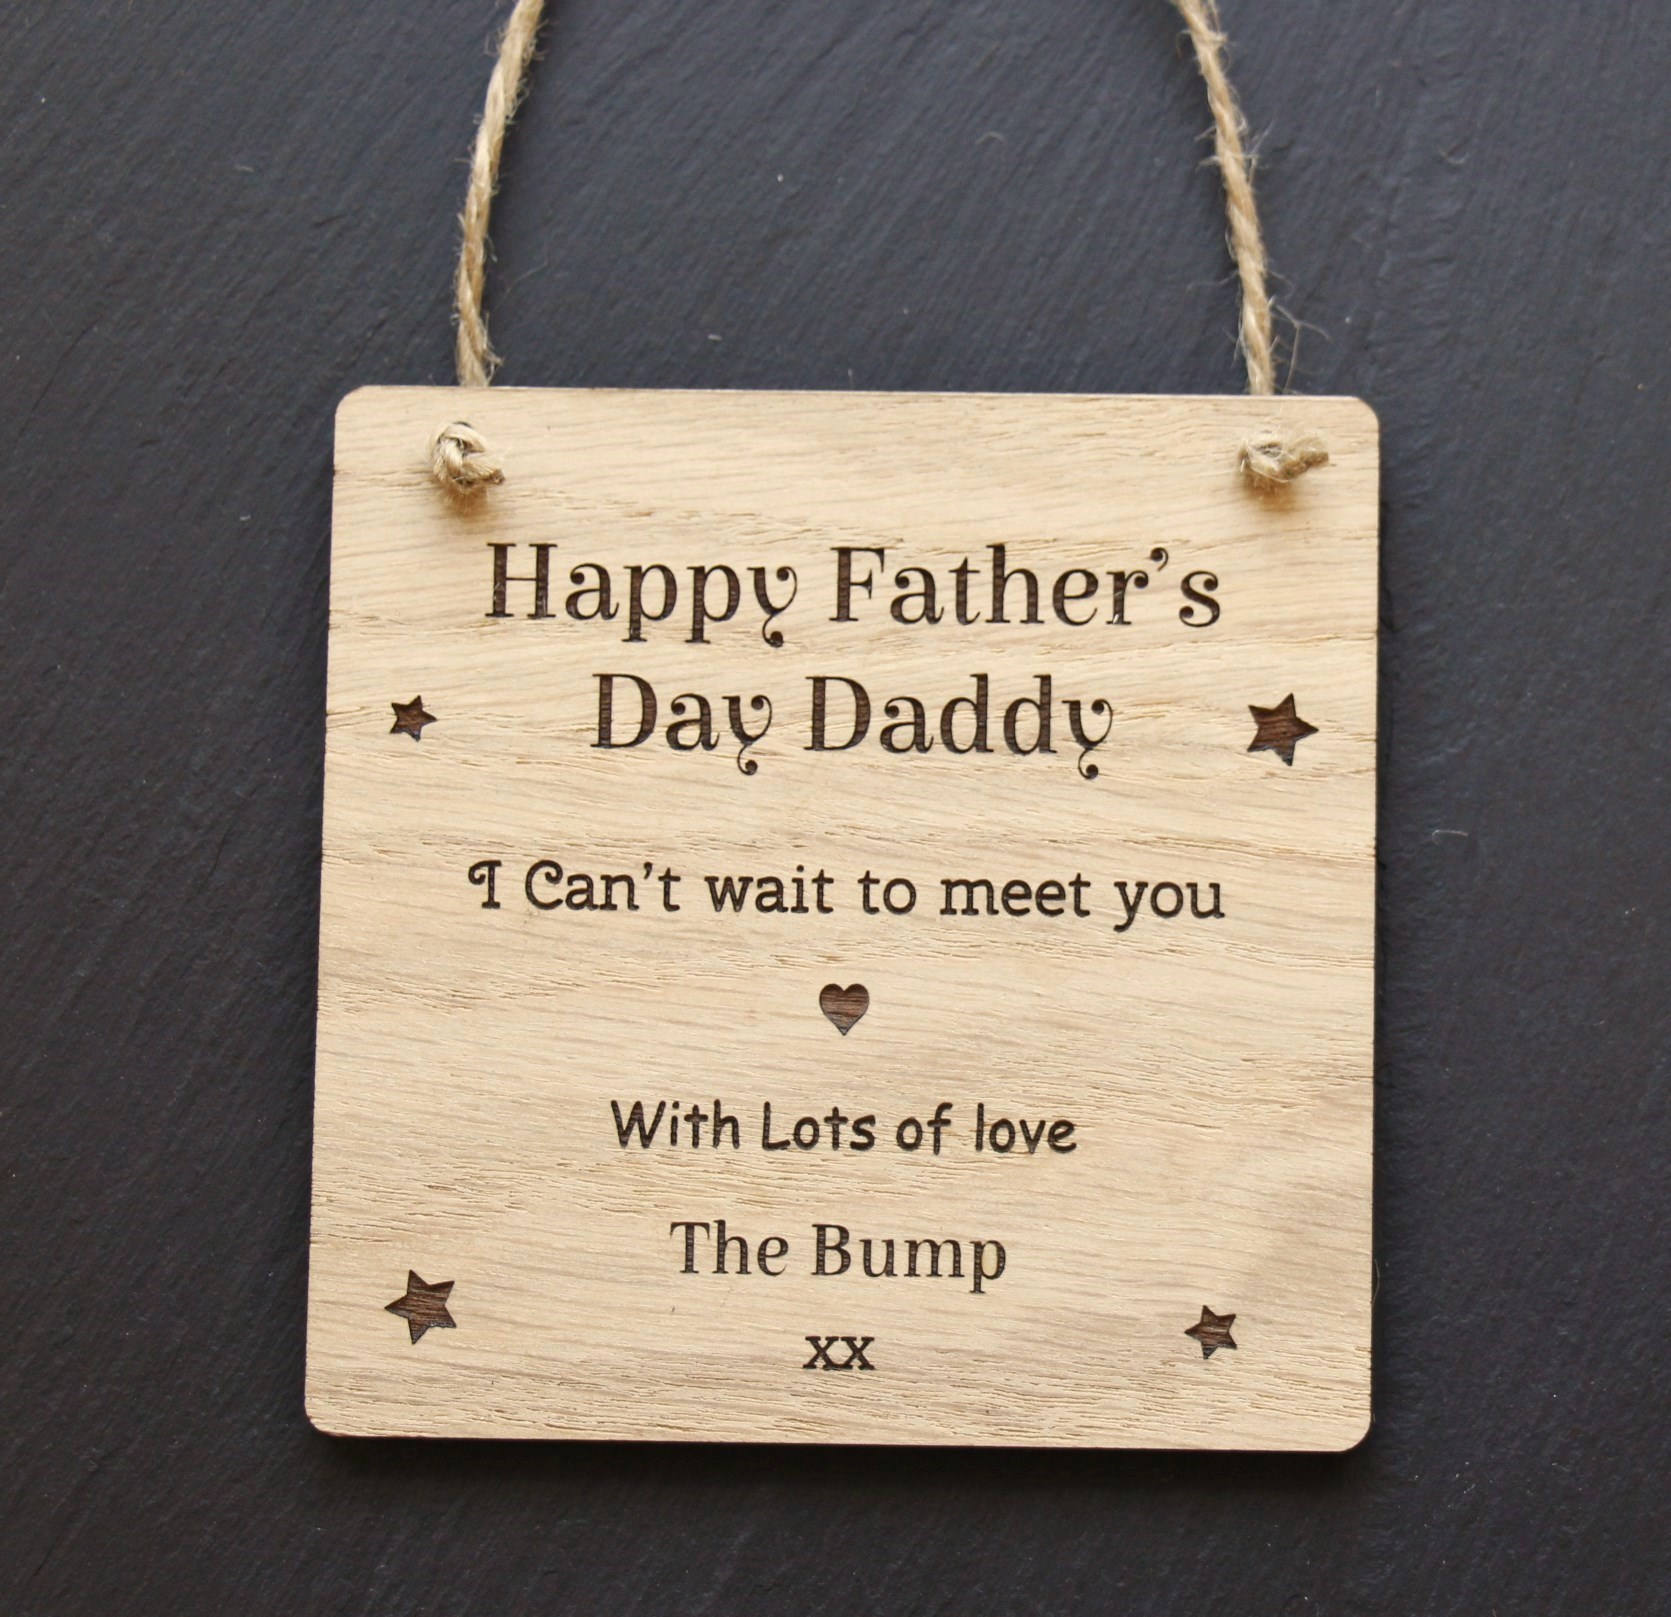 Happy Father's Day Love from The Bump Plaque, Personalised Father's Day Gift from The Bump